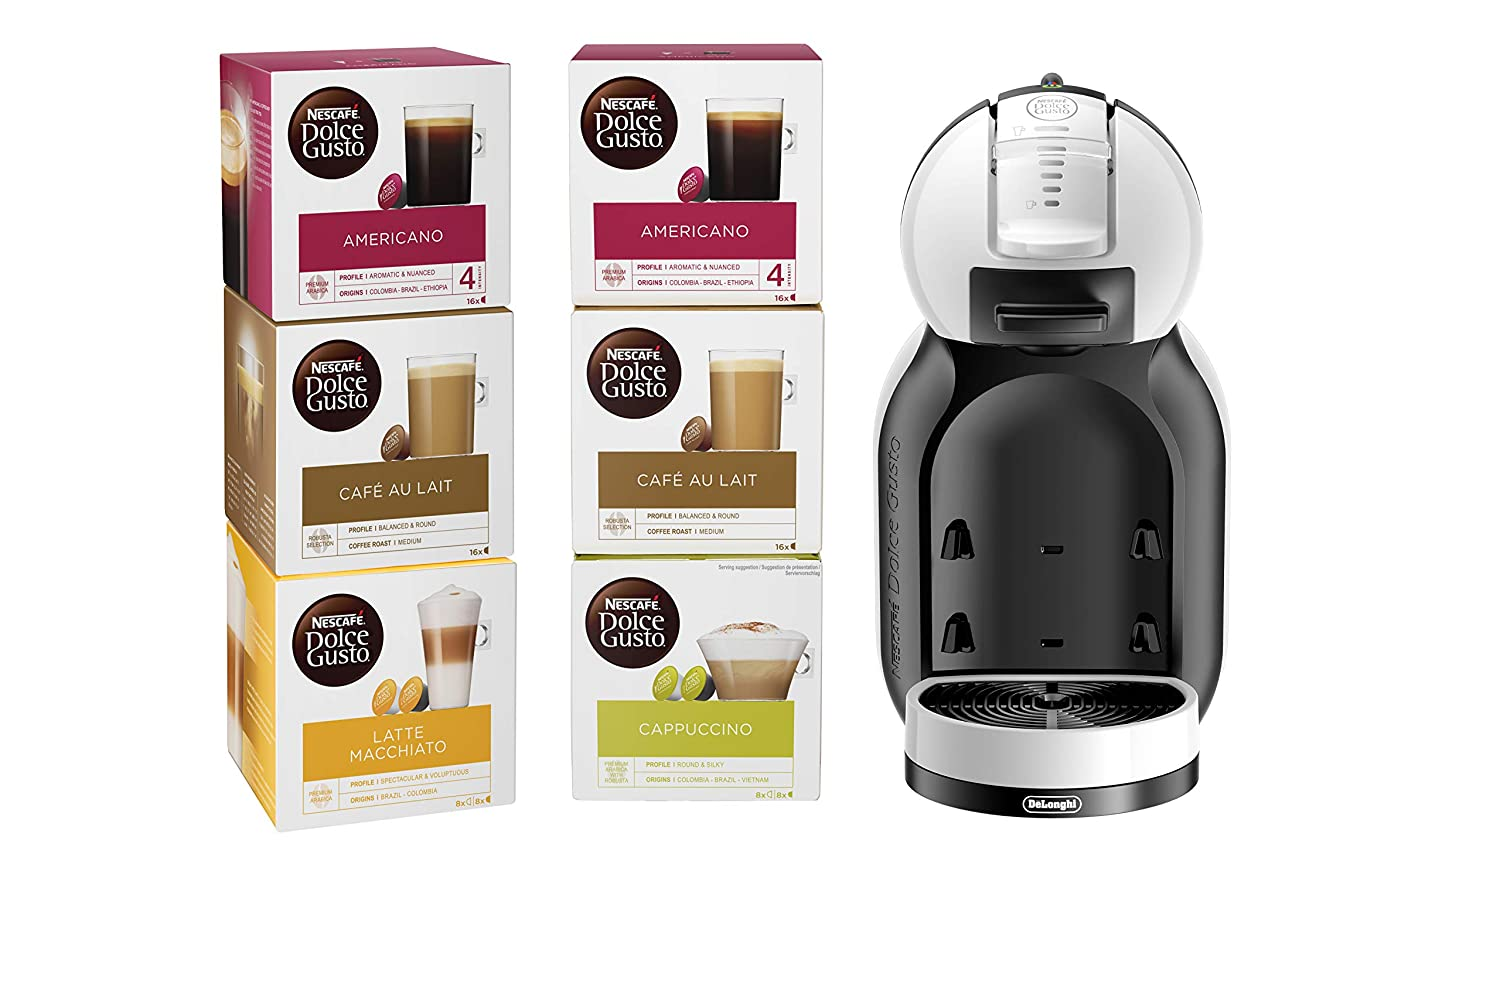 Amazon.com: Nescafe edg305wb Dolce Gusto Mini Me Bundle 220 ...